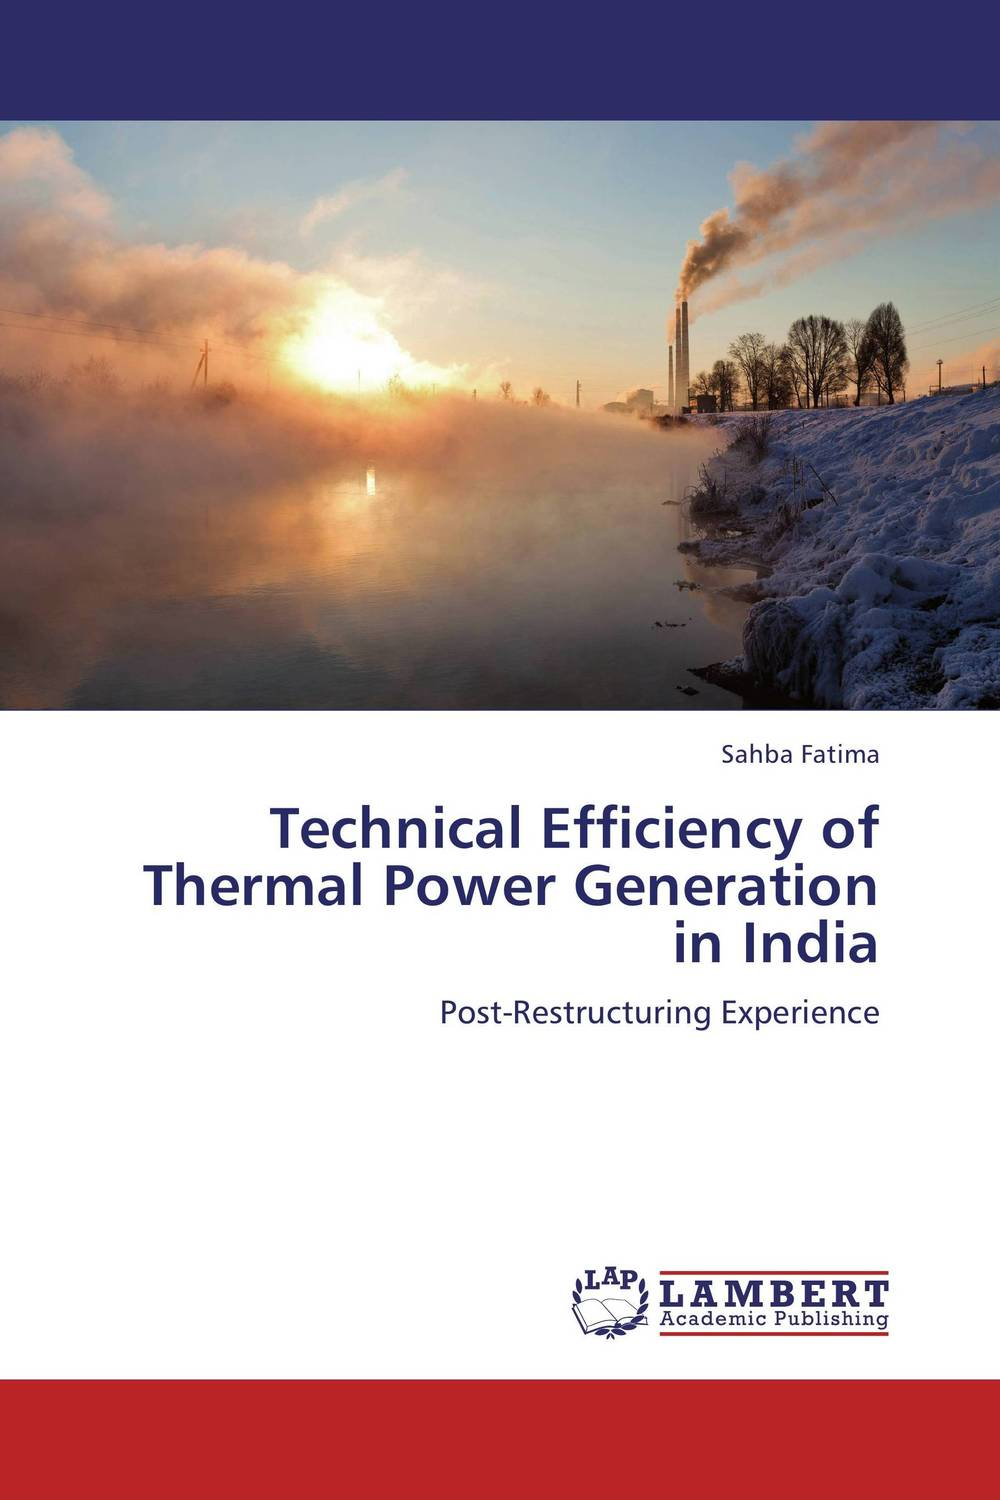 Technical Efficiency of Thermal Power Generation in India the optimal planning for power generation by waste